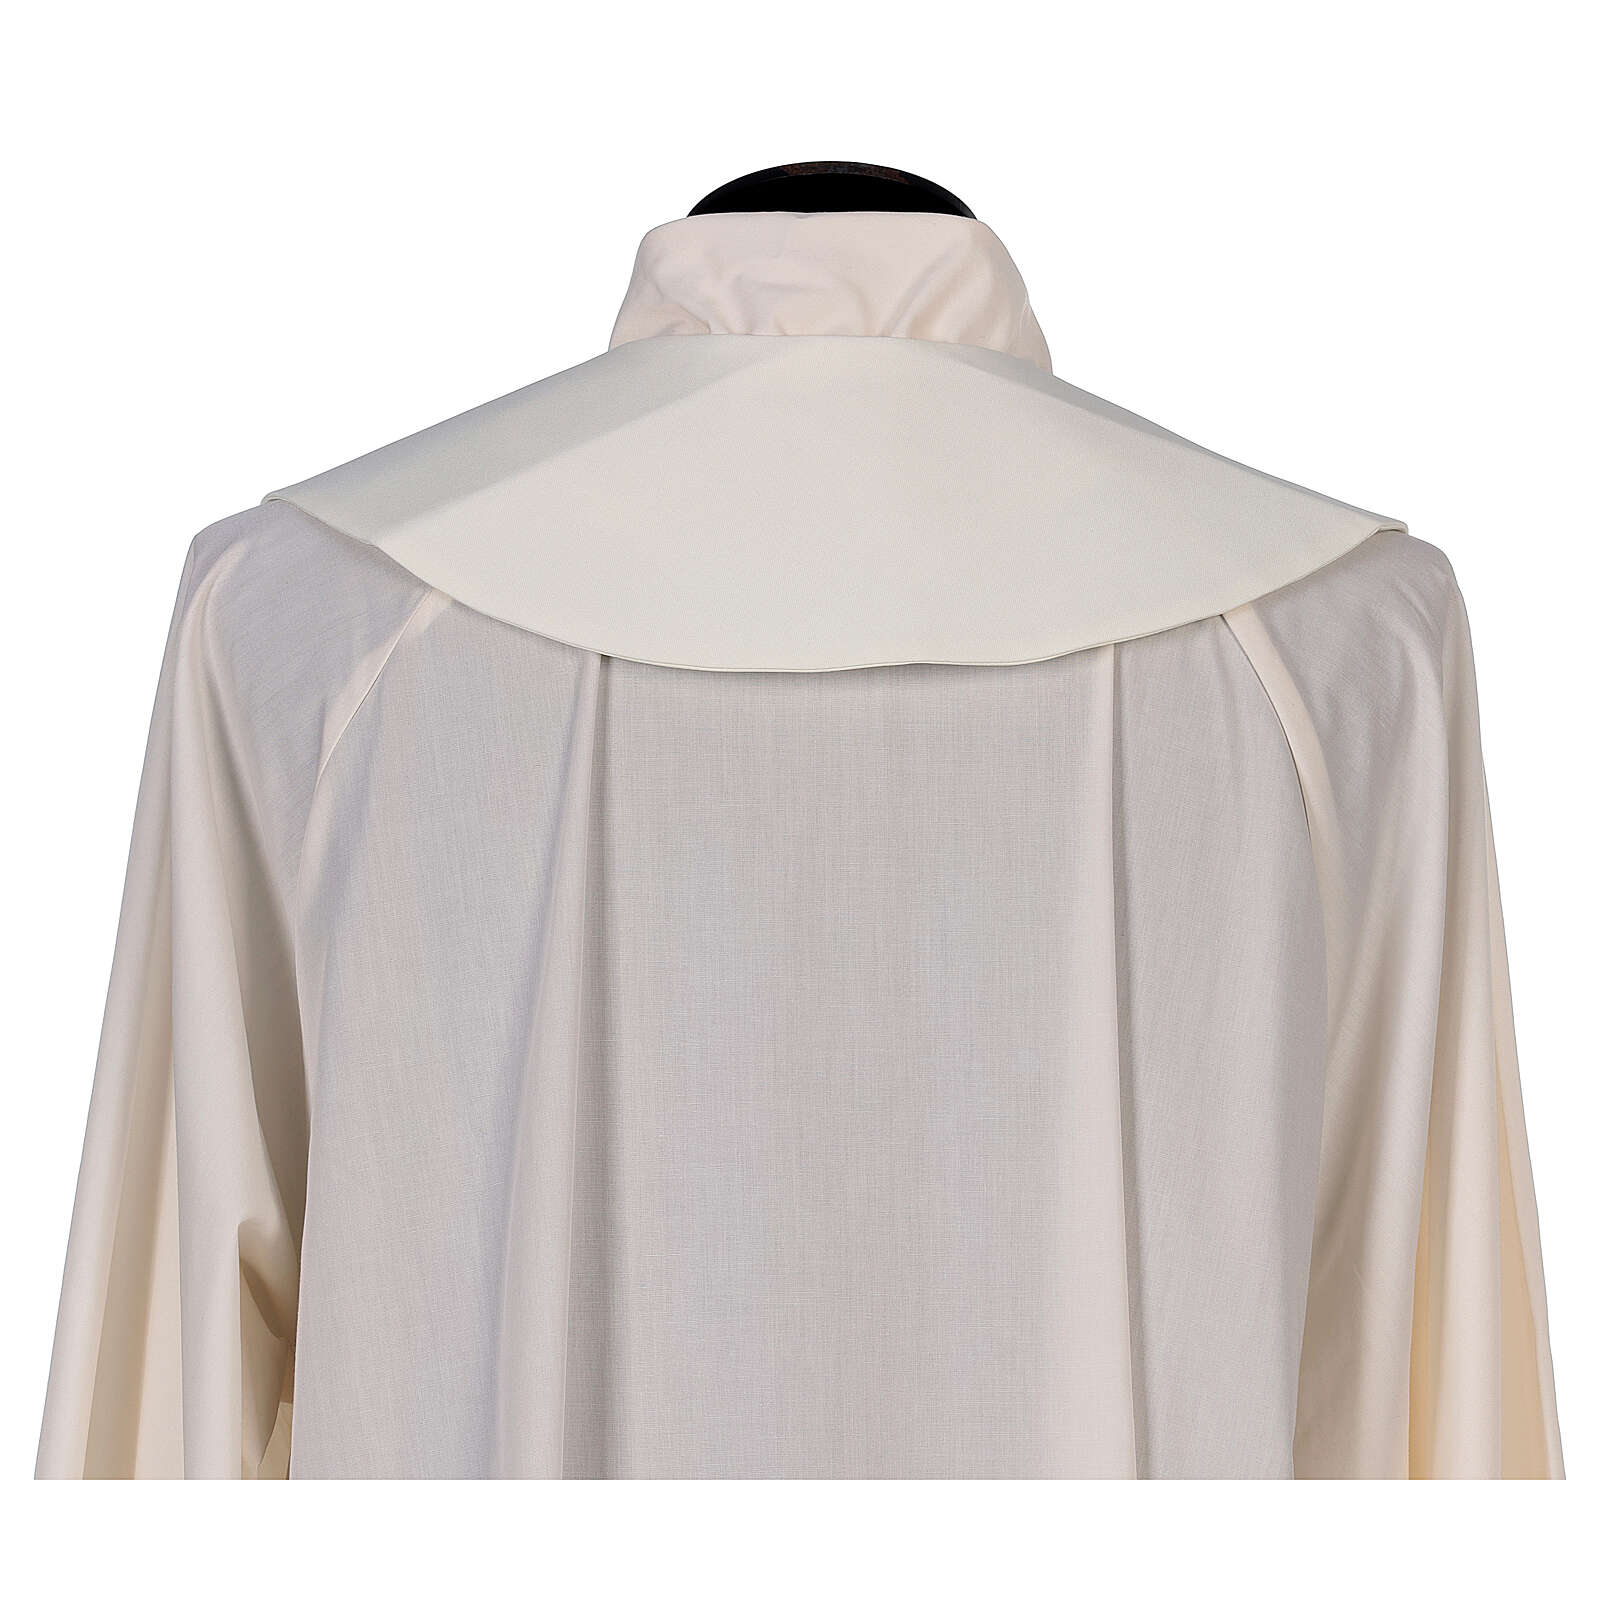 Stole in 100% polyester with loaves and doves 4